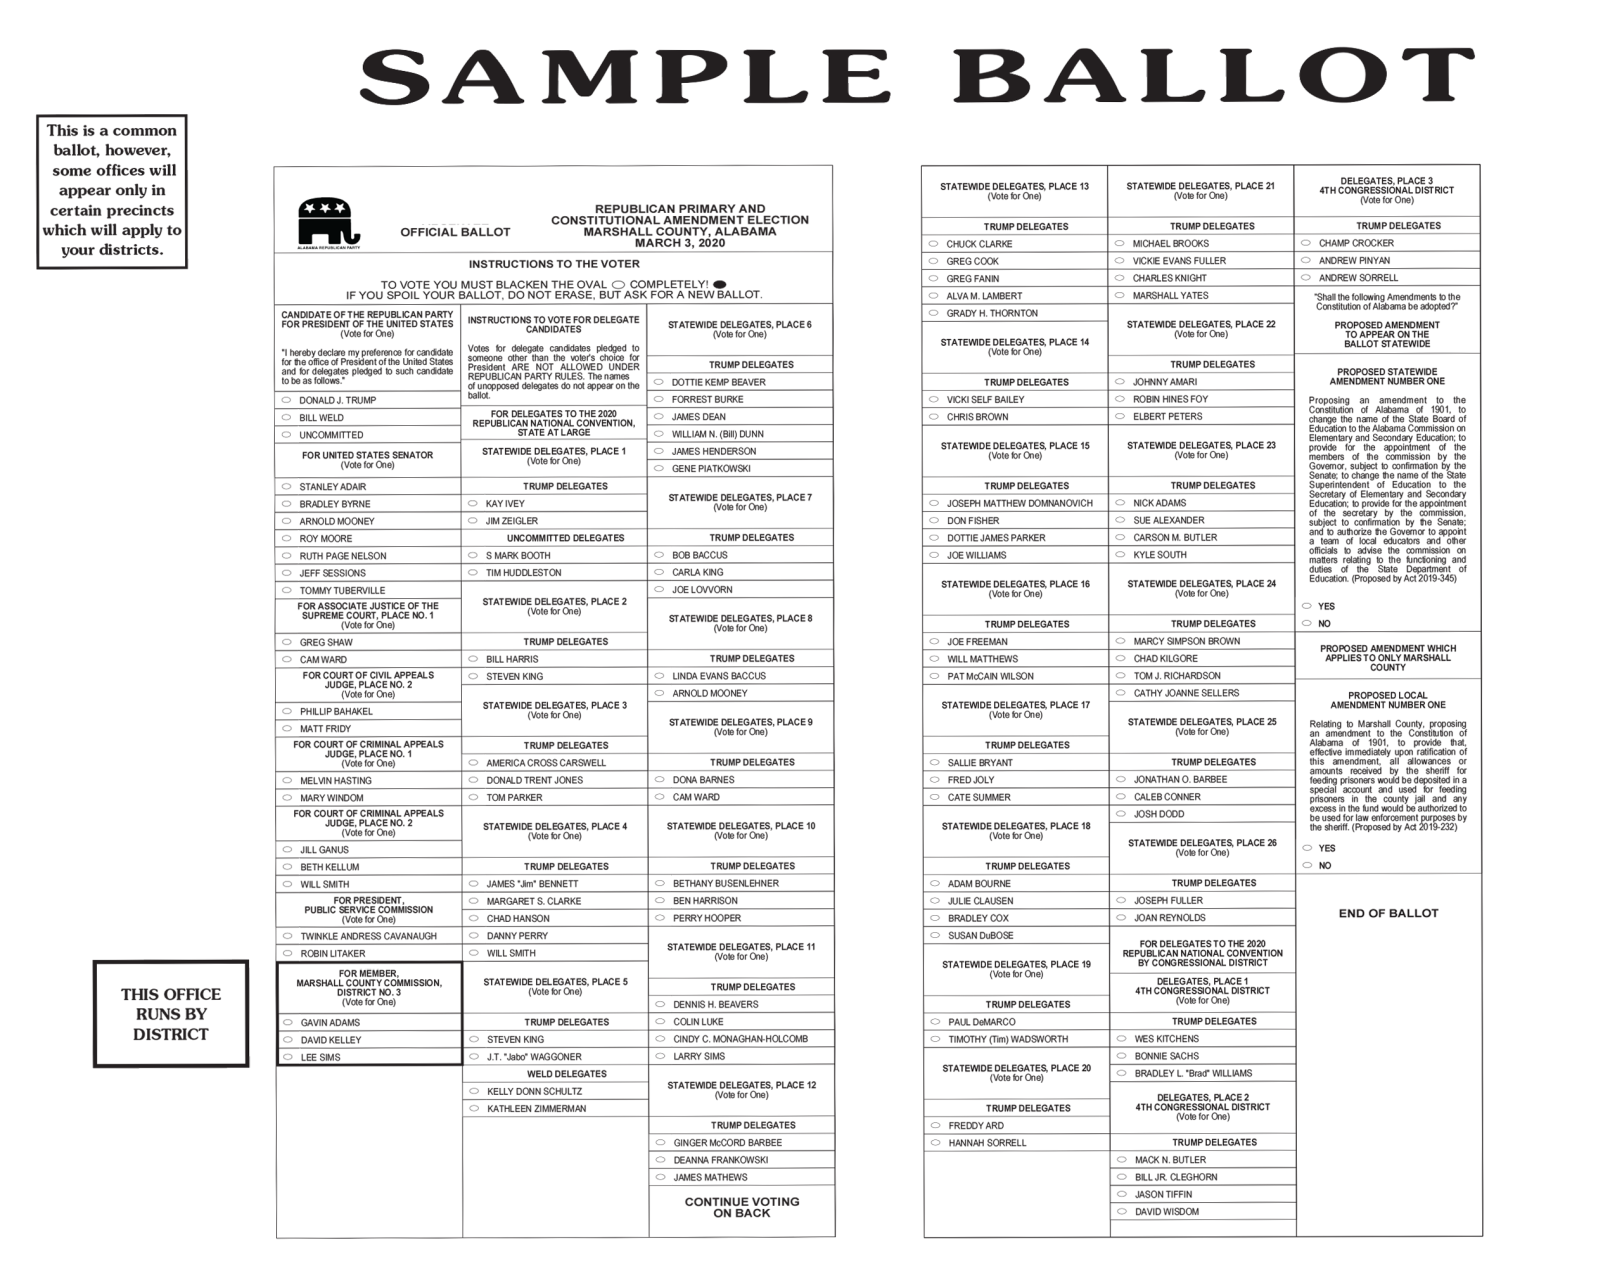 Sample ballots for 2020 primary elections